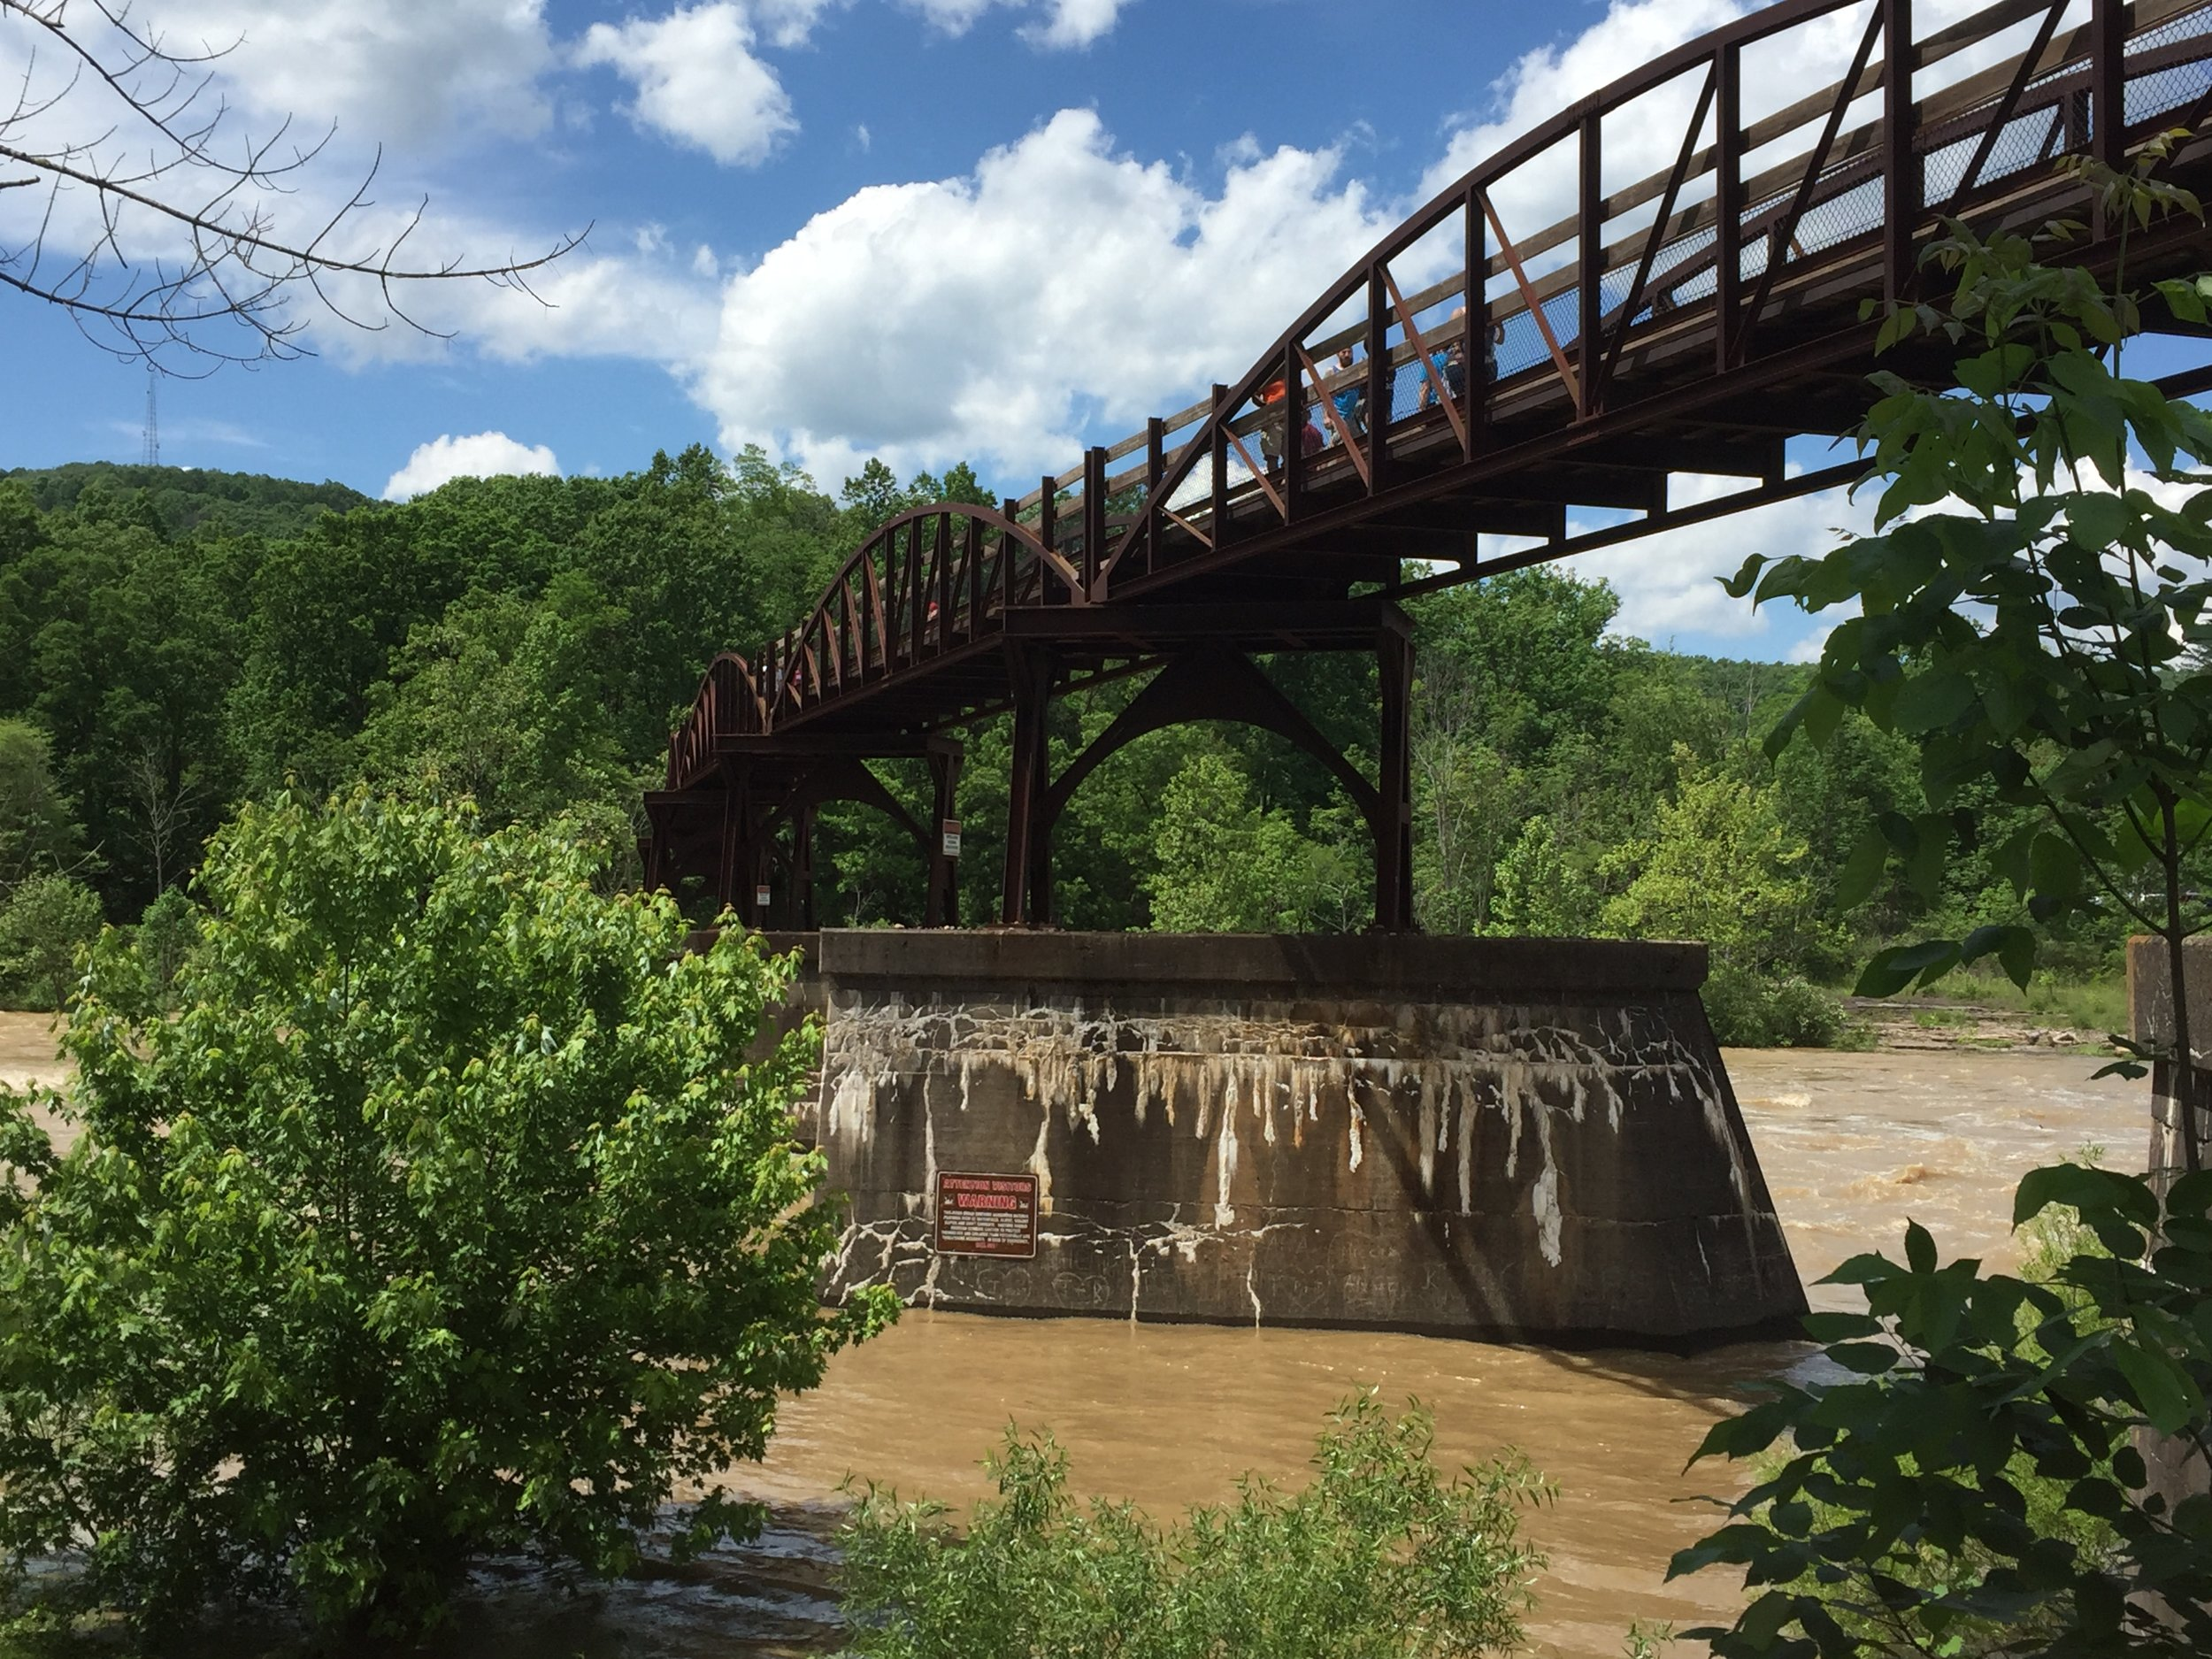 Looking out at the bridge crossing the Youghiogeny River in Ohiopyle